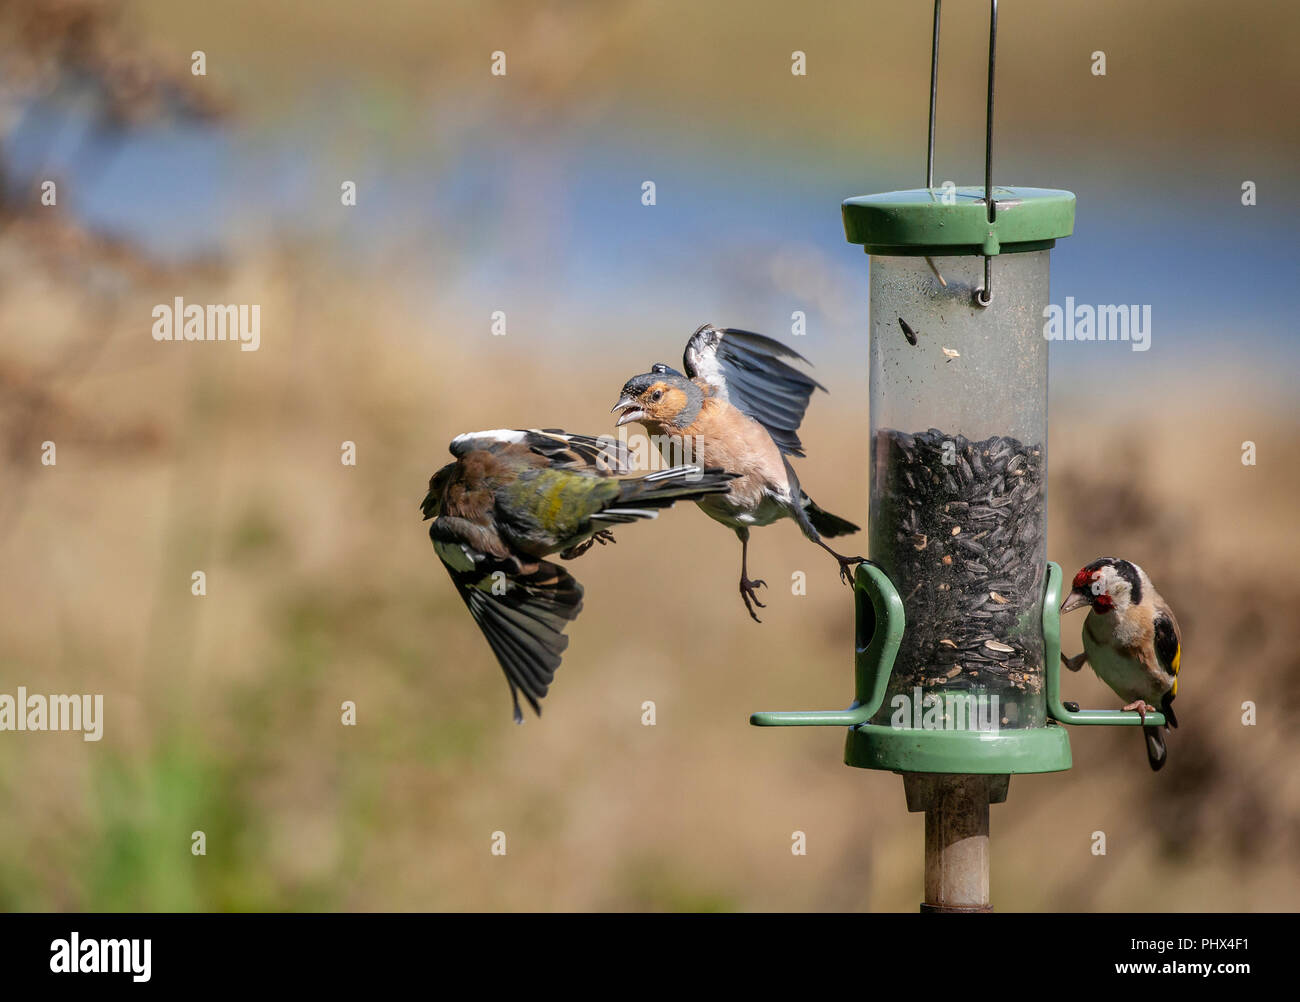 Bird feeder drama: a male Chaffinch, Fringilla coelebs, chases of another which has a seed in its beak while a Goldfinch feeds at the other side. Focu - Stock Image